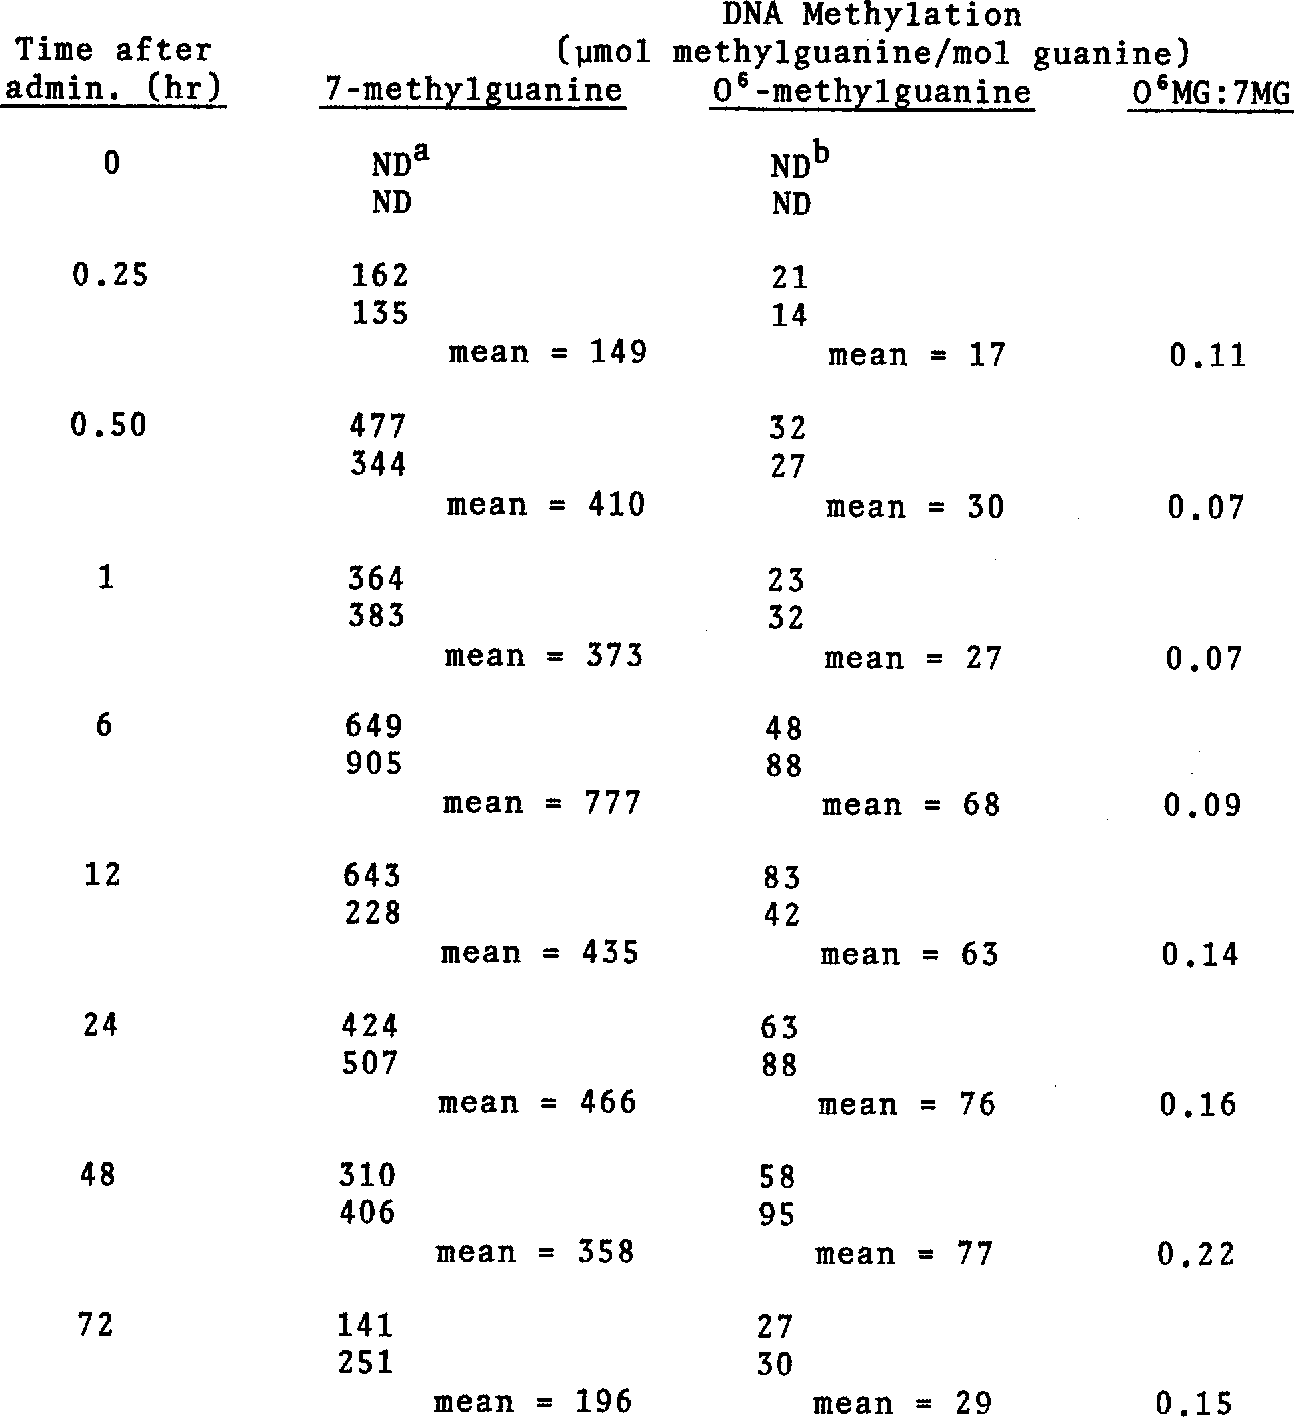 TABLE 2. VARIATION WITH TIME IN LEVELS OF 7-METHYLGUANINE AND 0 6 -METHYLGUANINE IN LIVER DNA AFTER SINGLE ADMINISTRATION OF 90 MG HYDRAZINE/KG BODY WEIGHT TO HAMSTERS